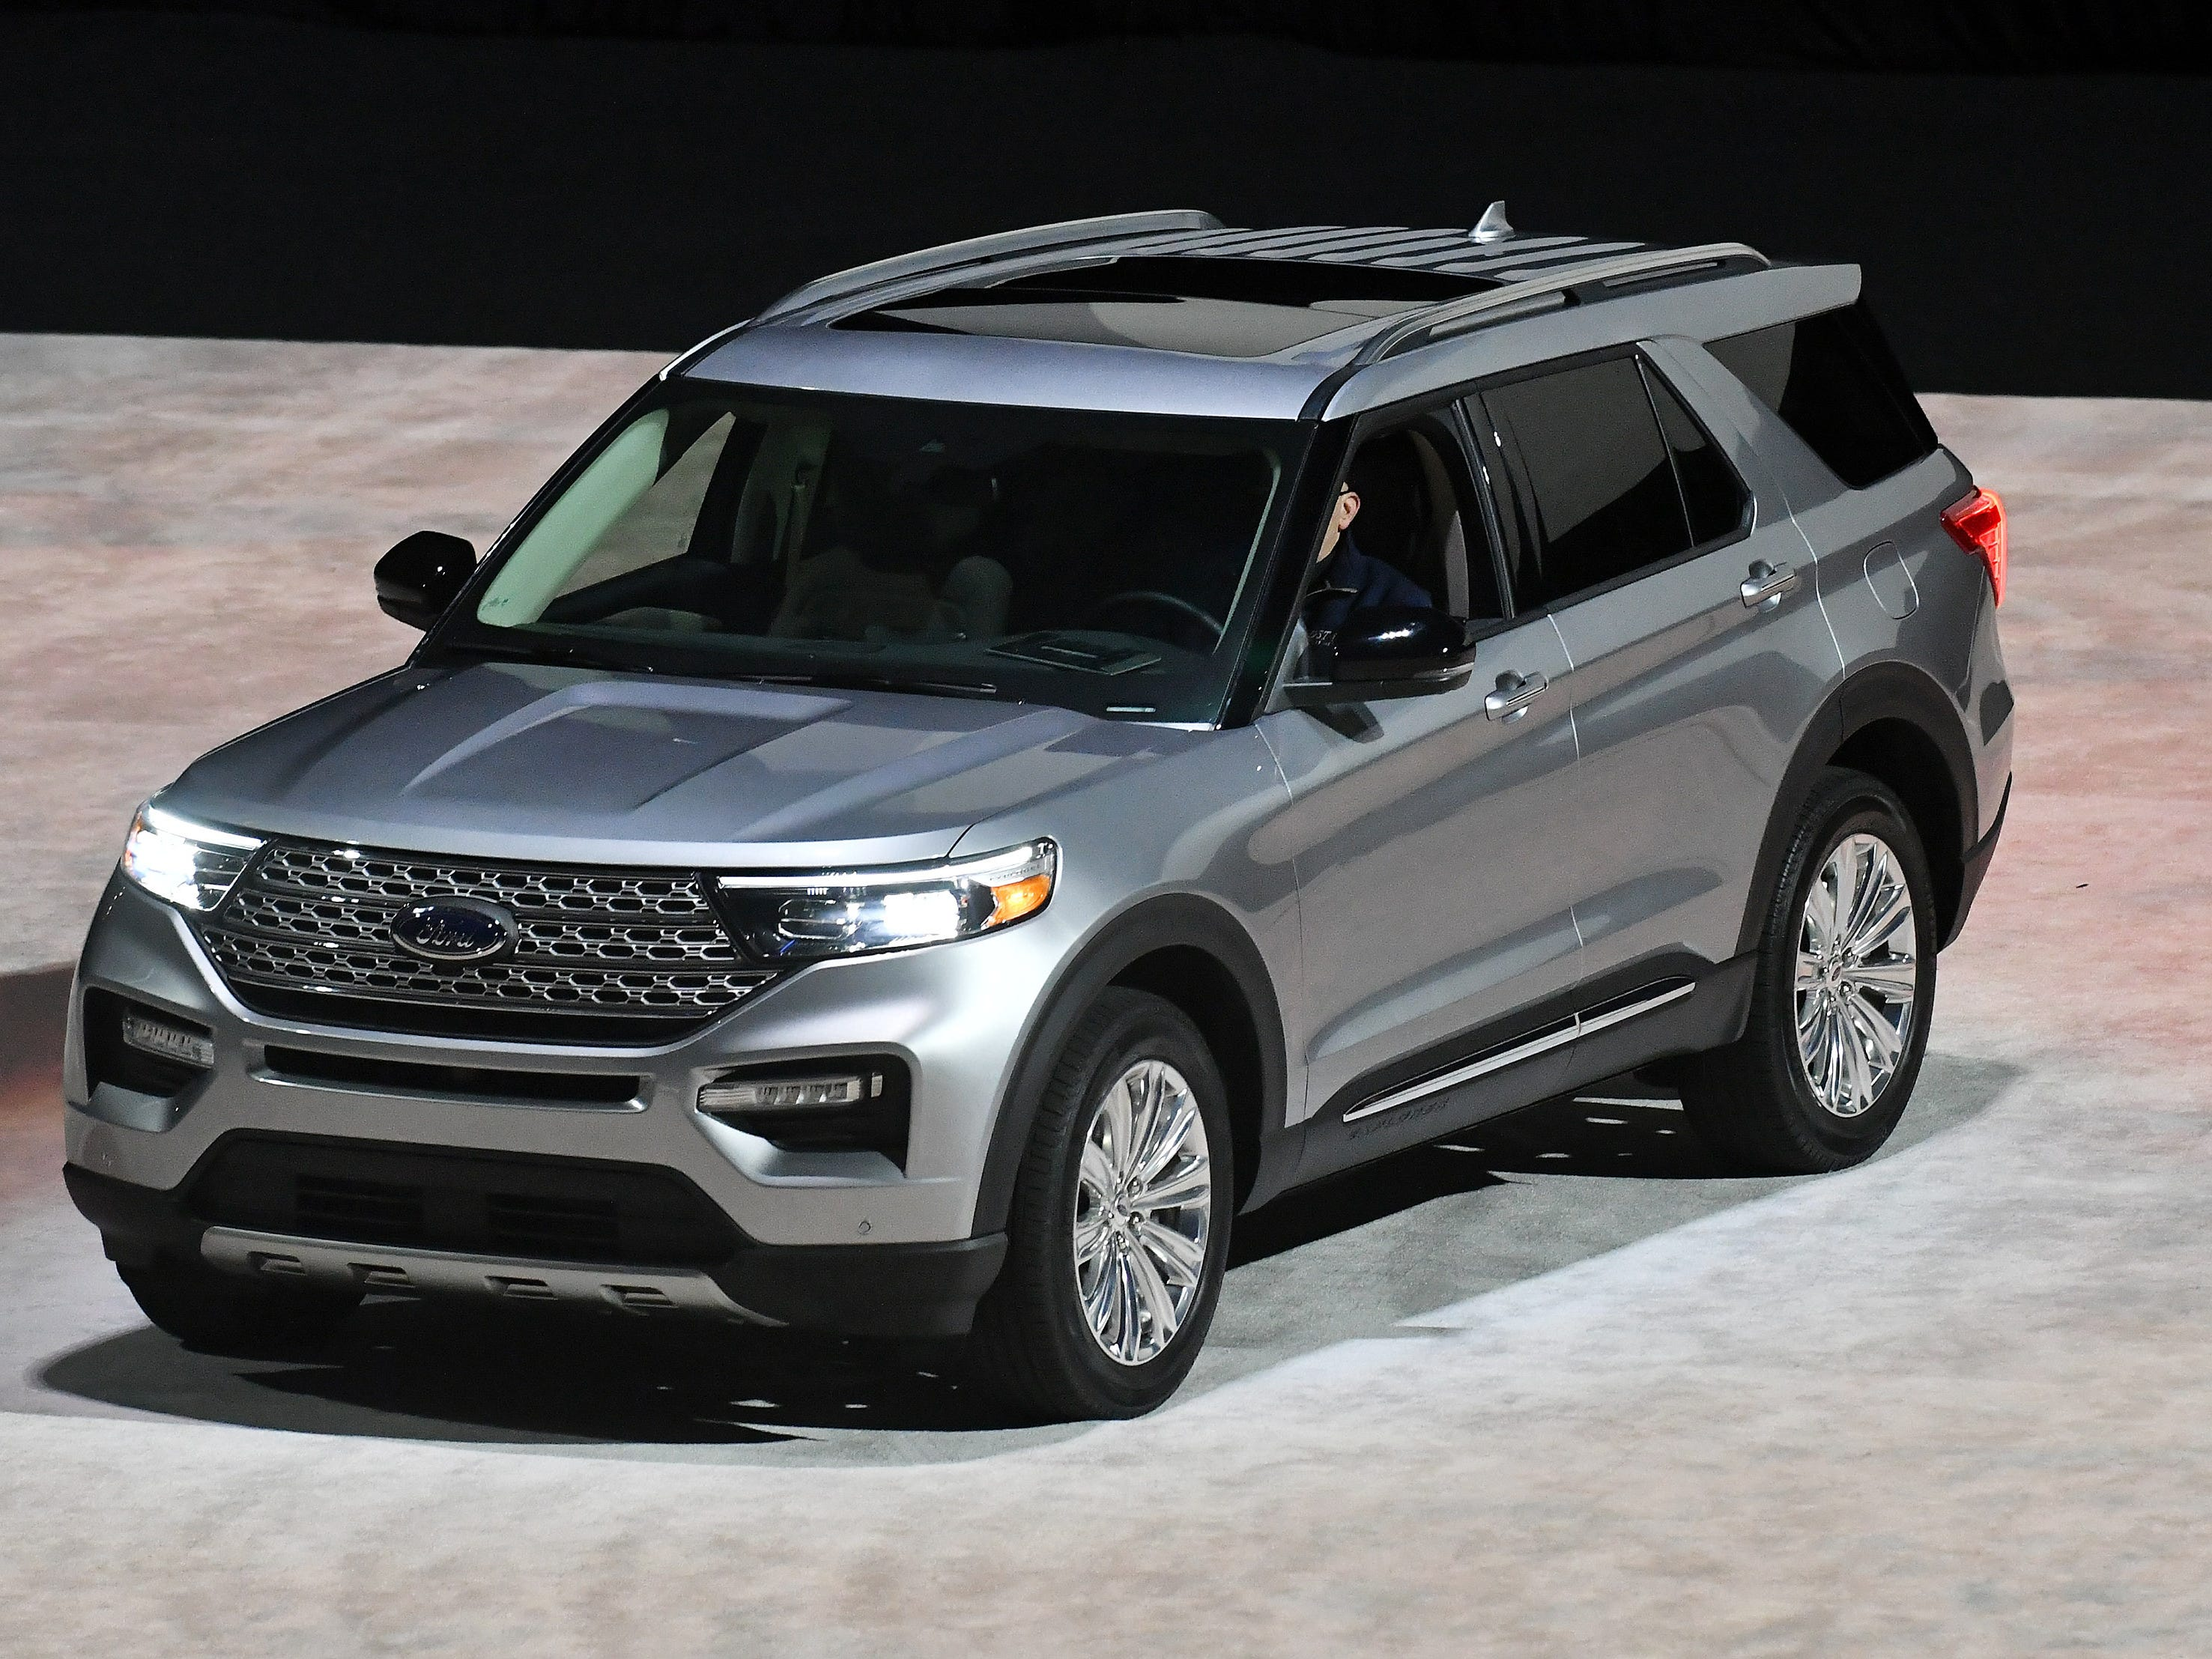 The 2020 Ford Explorer: The new Explorer, which debuted a few days before the auto show began, gets a more athletic stance, the roof tapering to the back end.